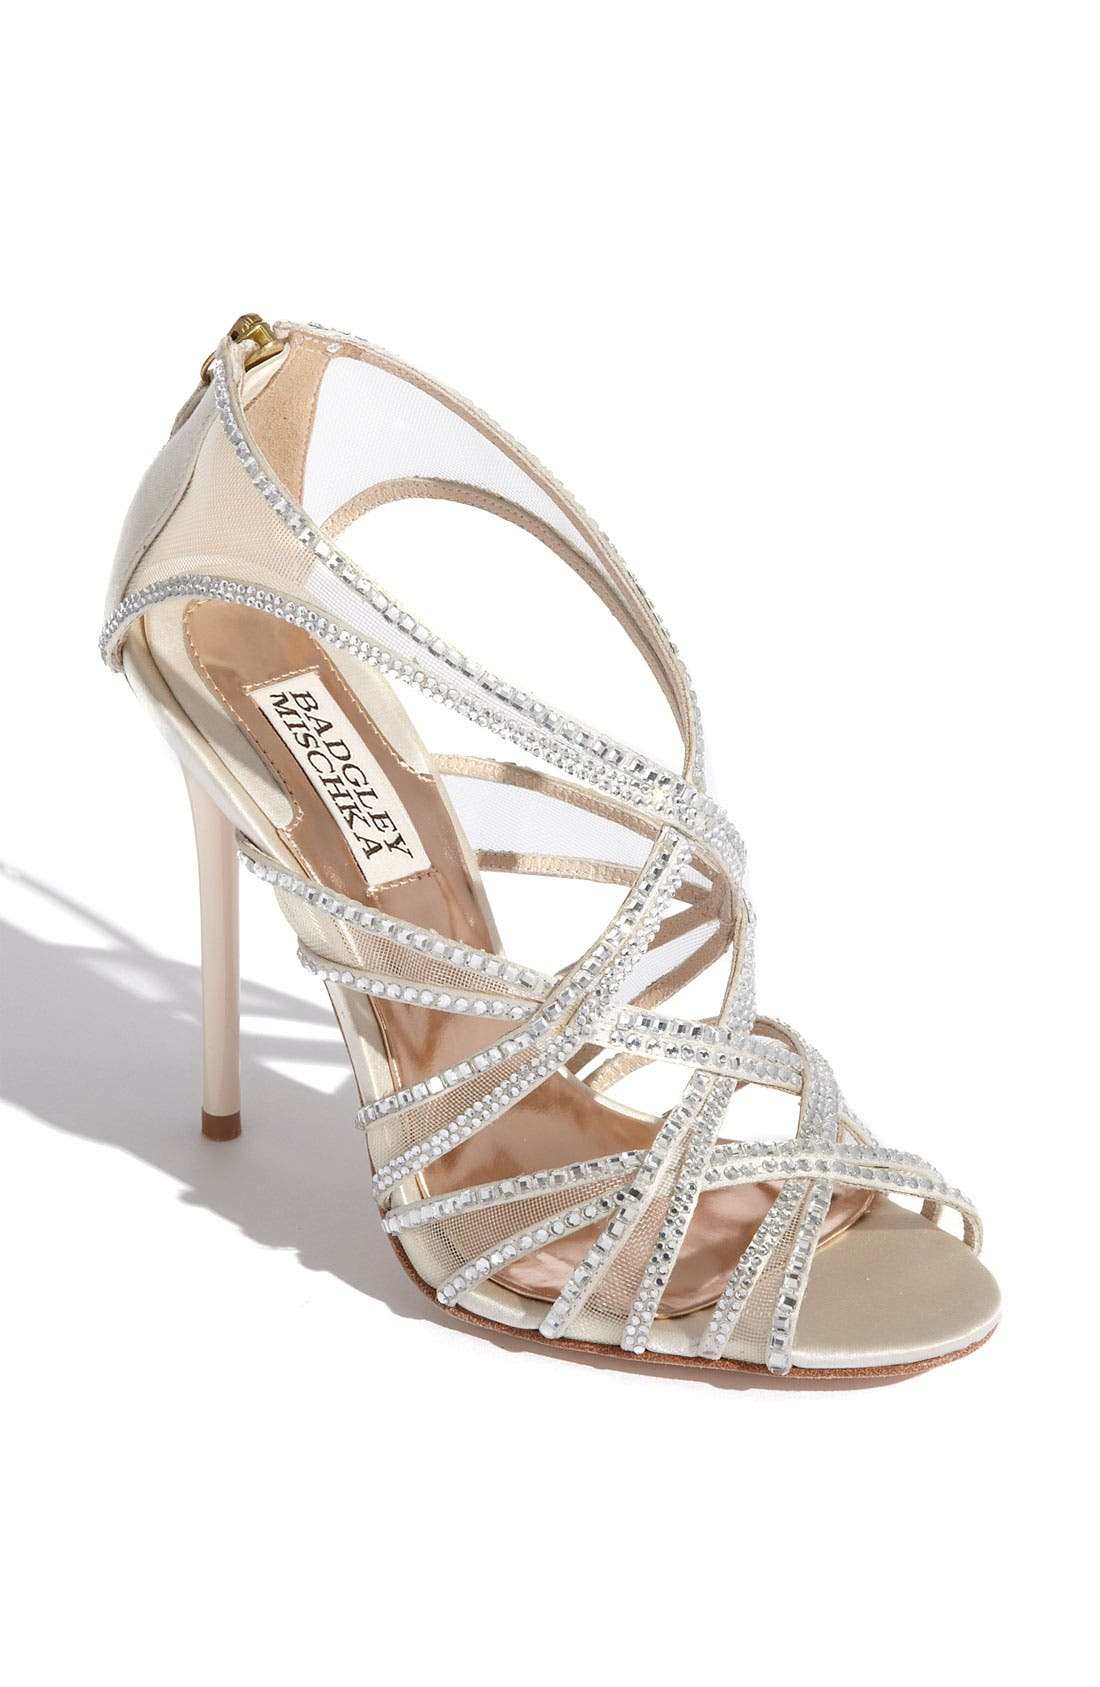 Alternate Image 1 Selected - Badgley Mischka 'Gloria' Sandal